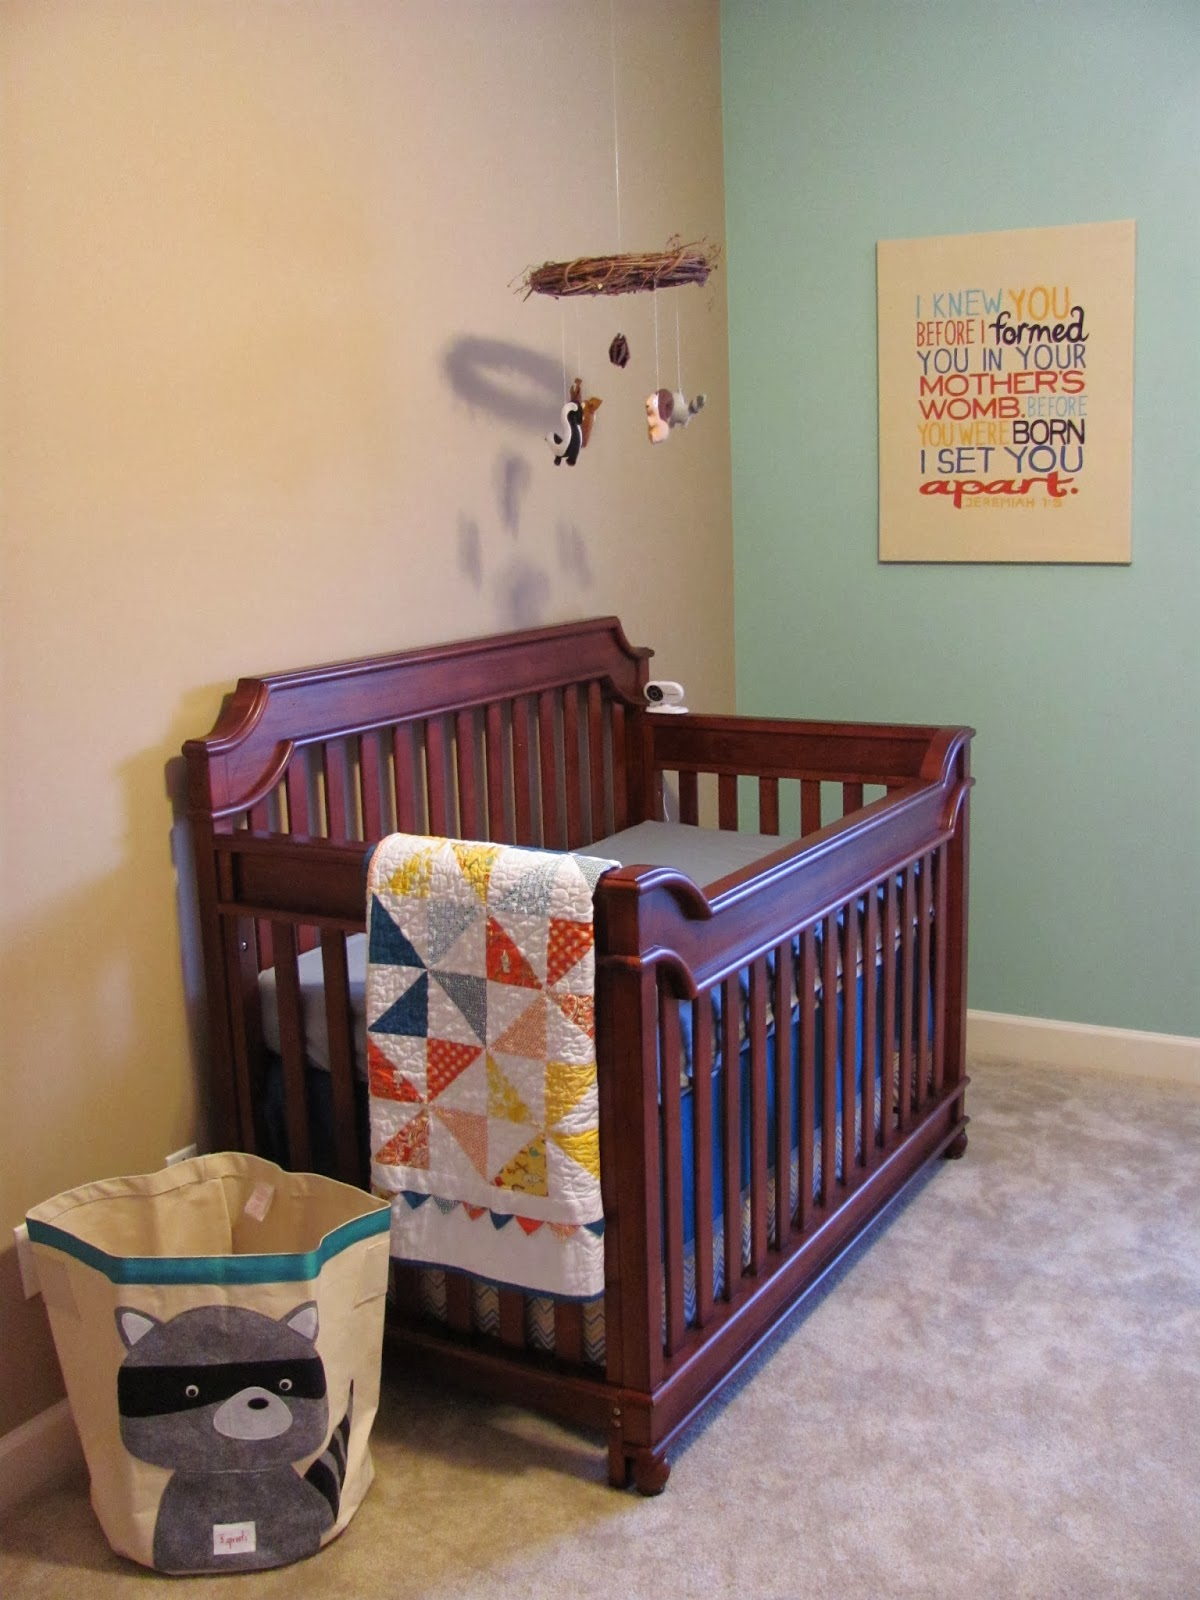 Angelyn S Rambelyns Bright And Whimsical Woodland Nursery